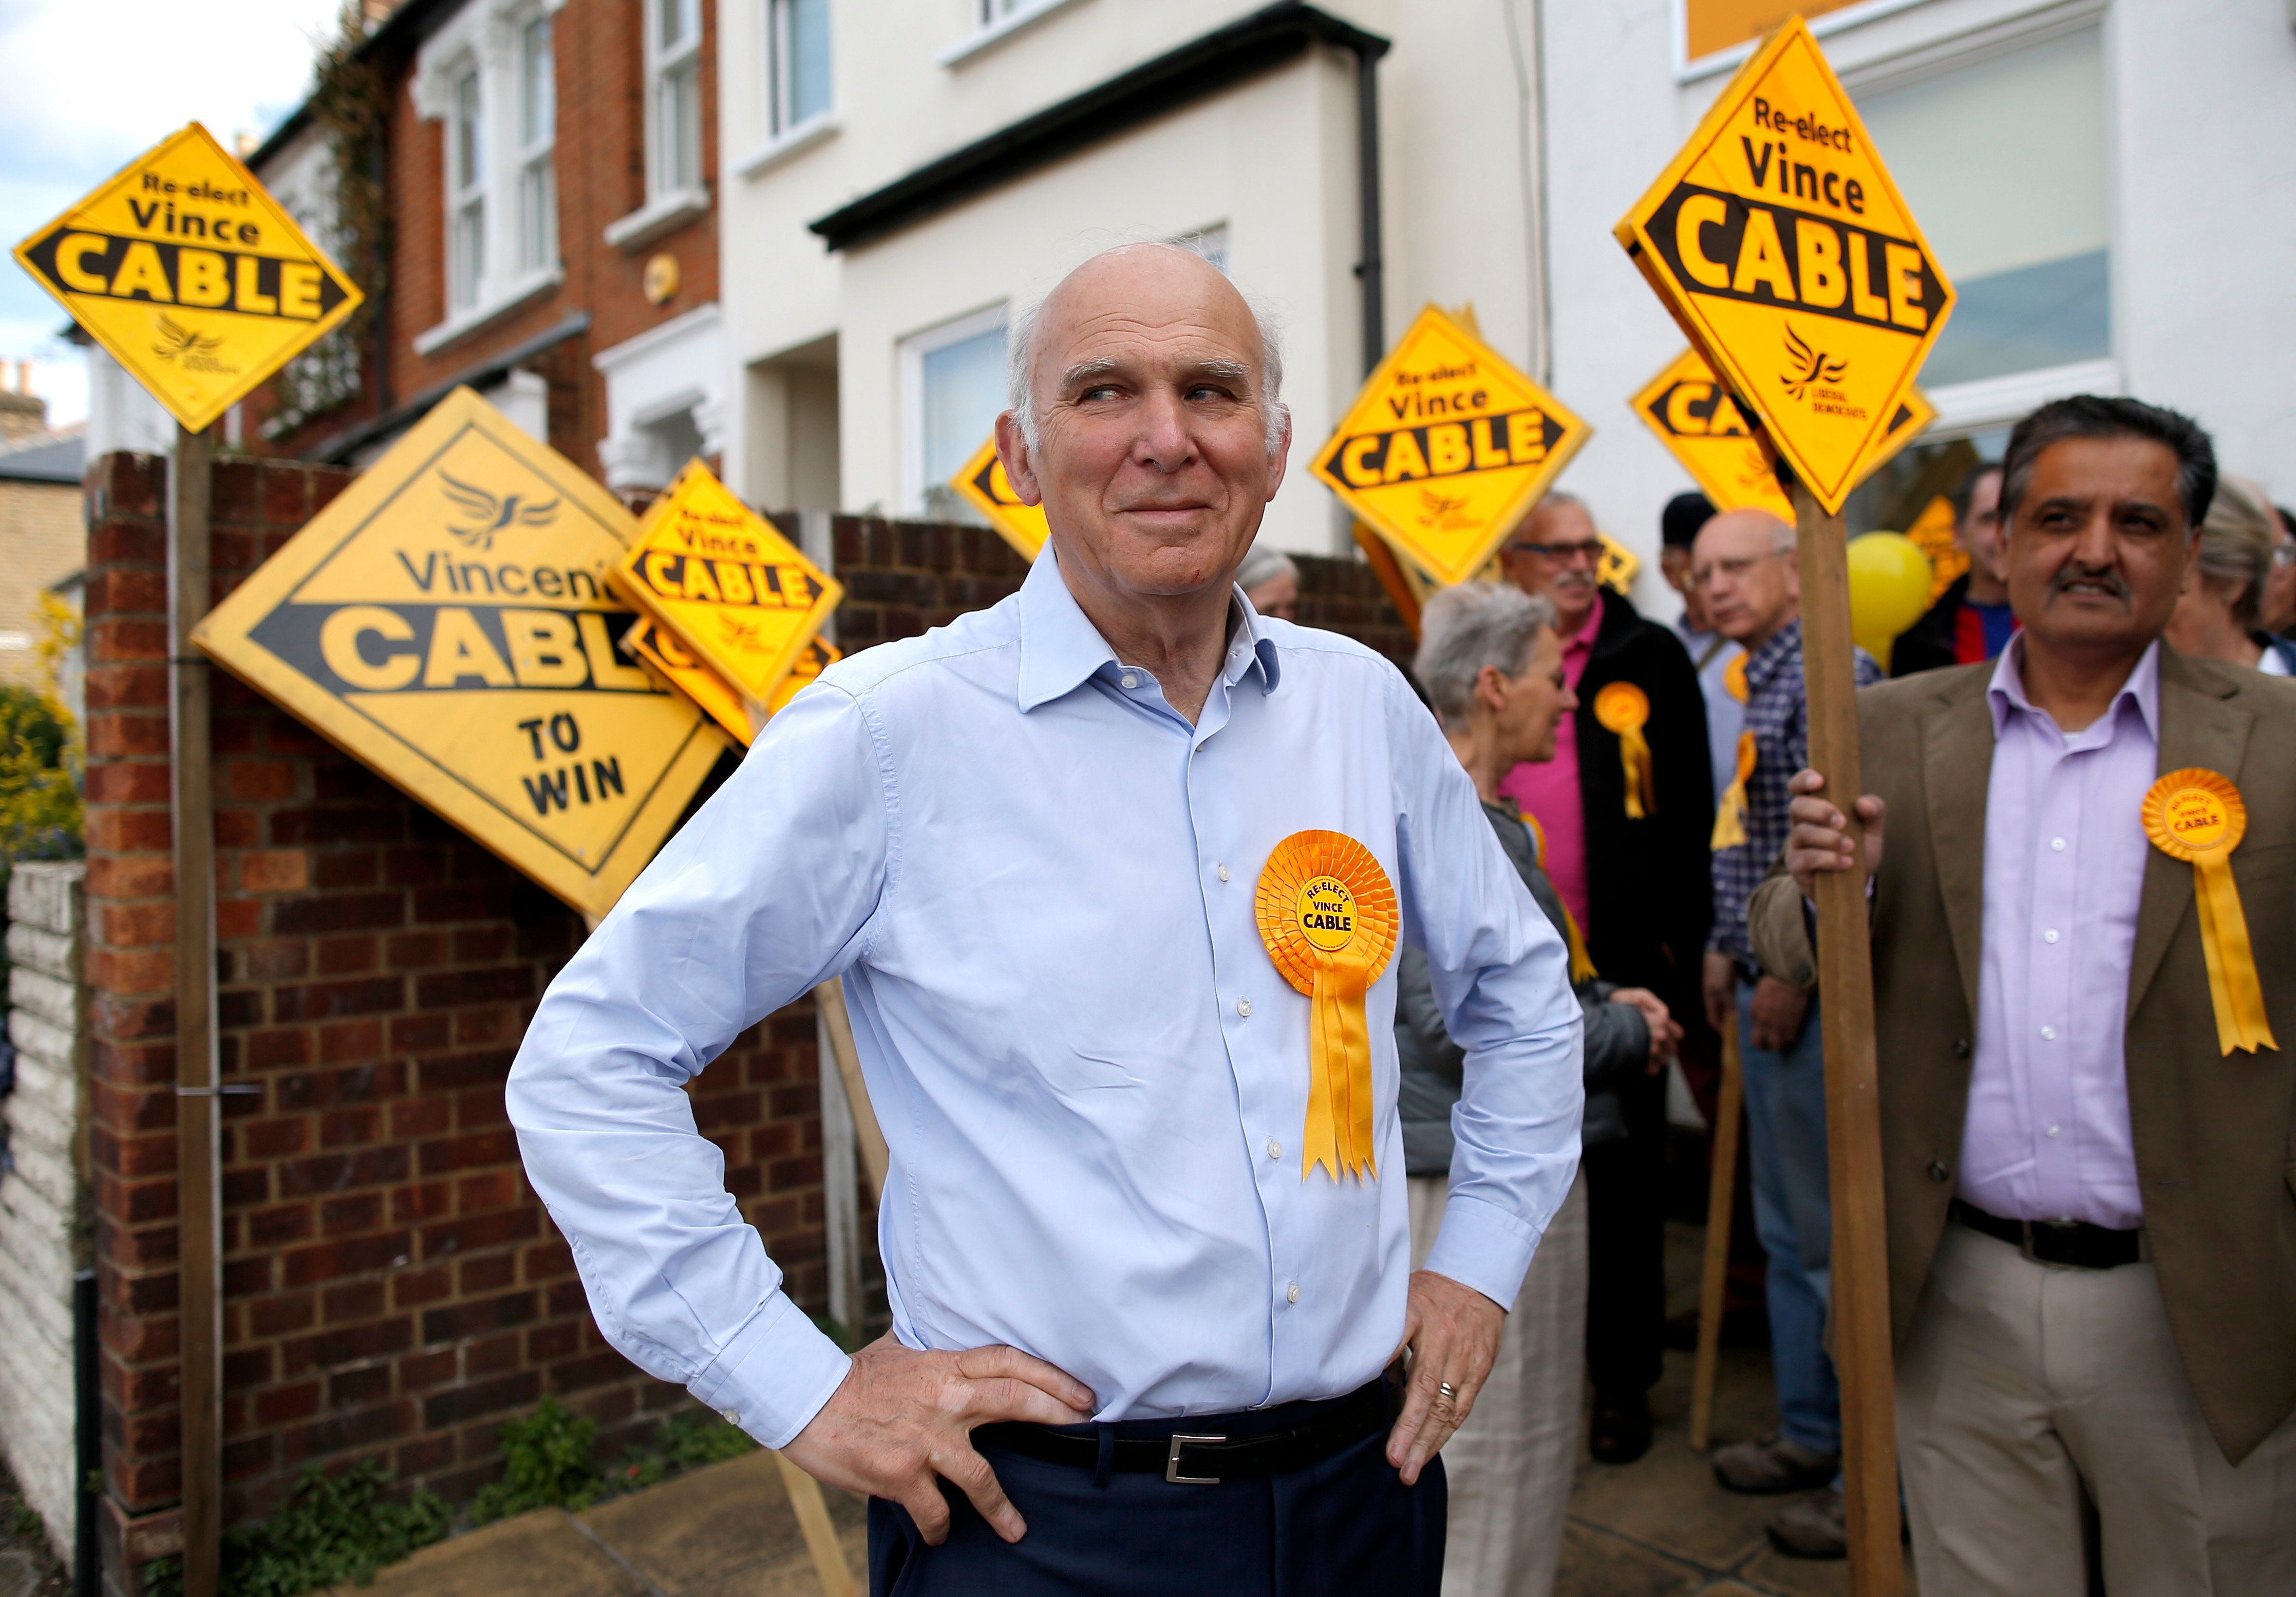 Vince Cable Set For Coronation As Ed Davey Rules Himself Out Of Lib Dem Leadership